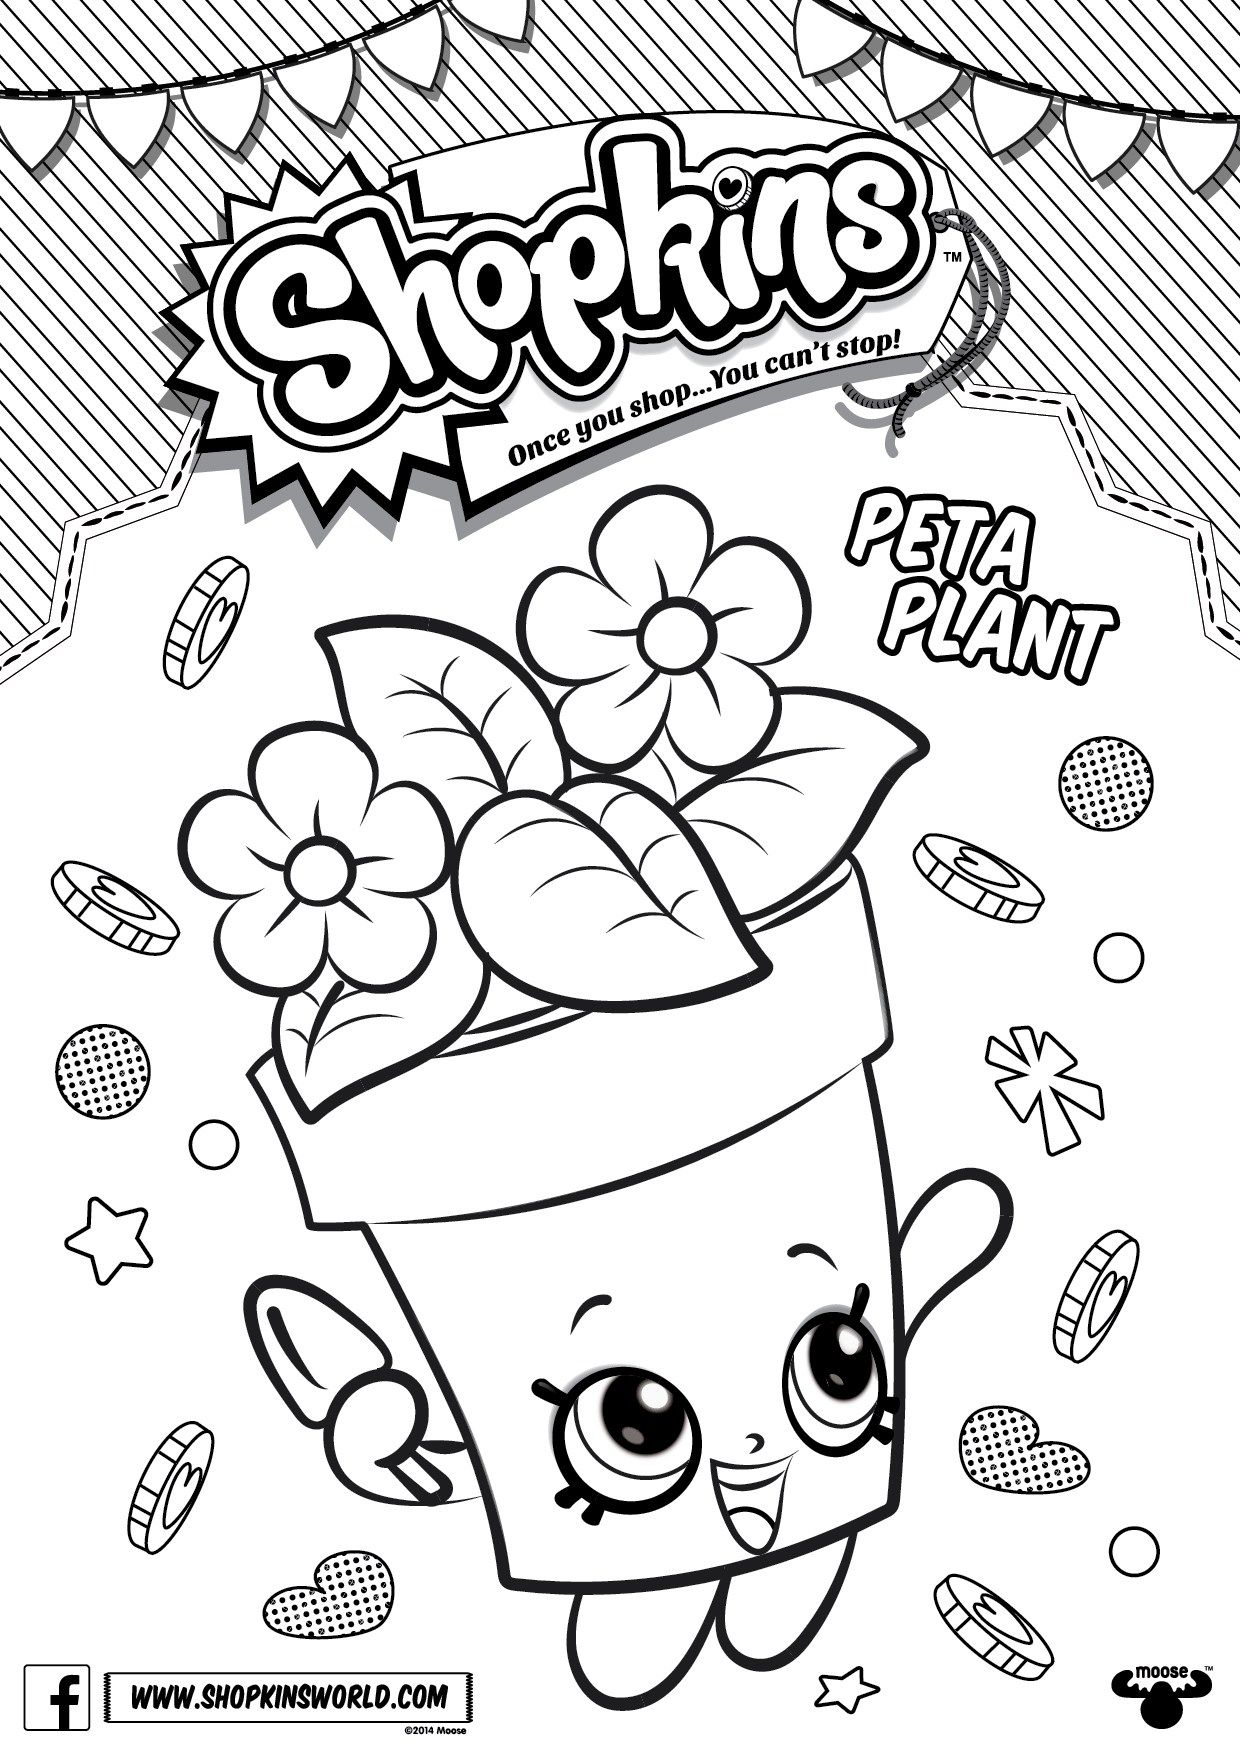 Shopkins Coloring Pages Season 4 Peta Plant Shopkin coloring pages Shopkins colouring pages